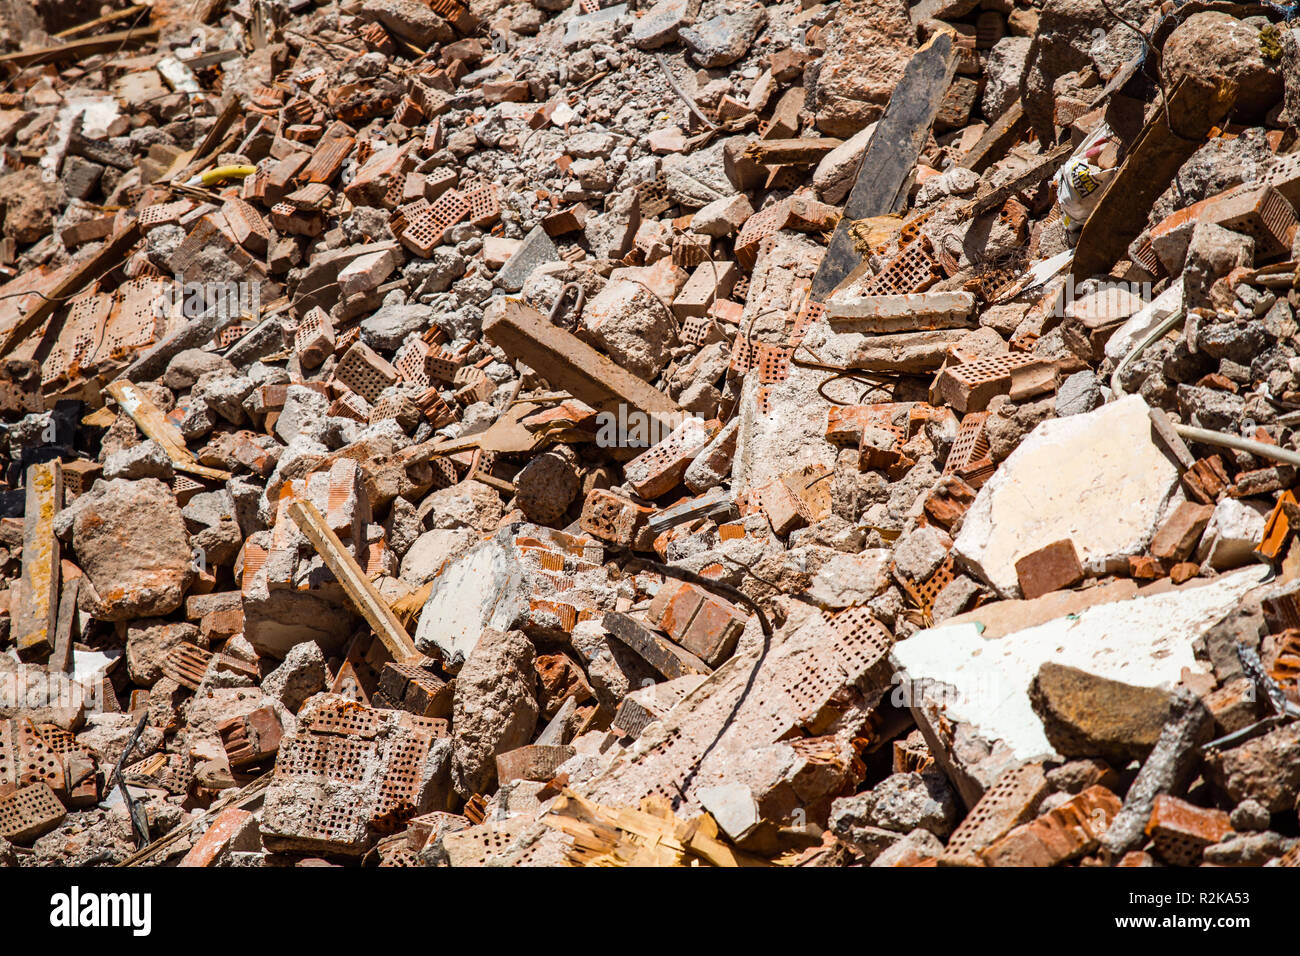 Rubble from the demolition of an old building under urban renewal project - Stock Image